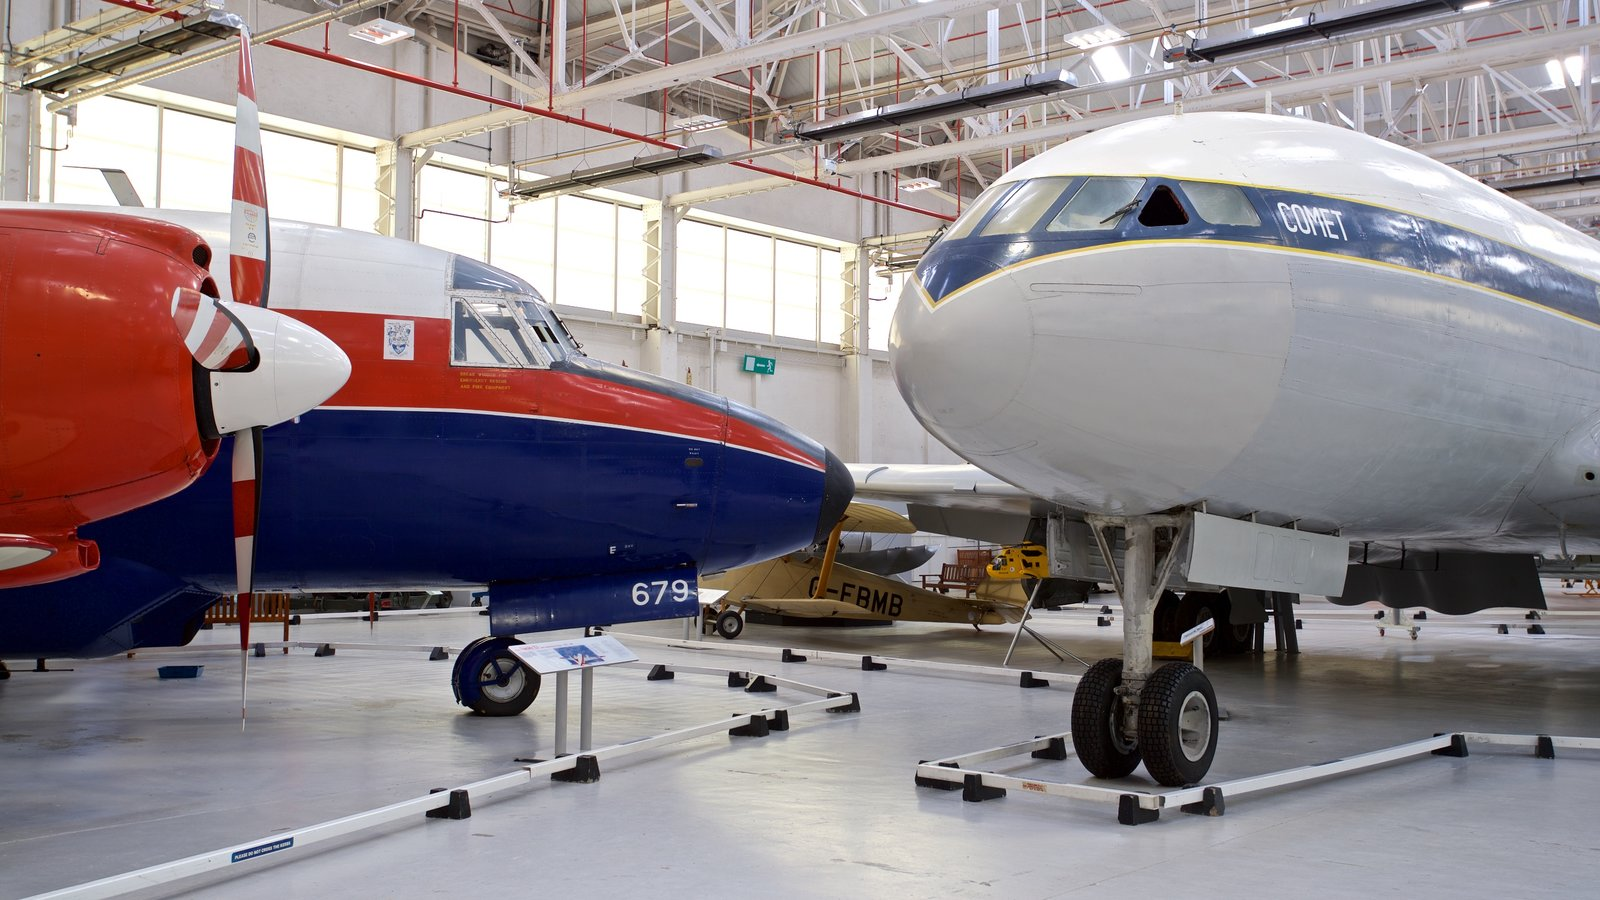 Cosford Royal Air Force Museum which includes aircraft and interior views